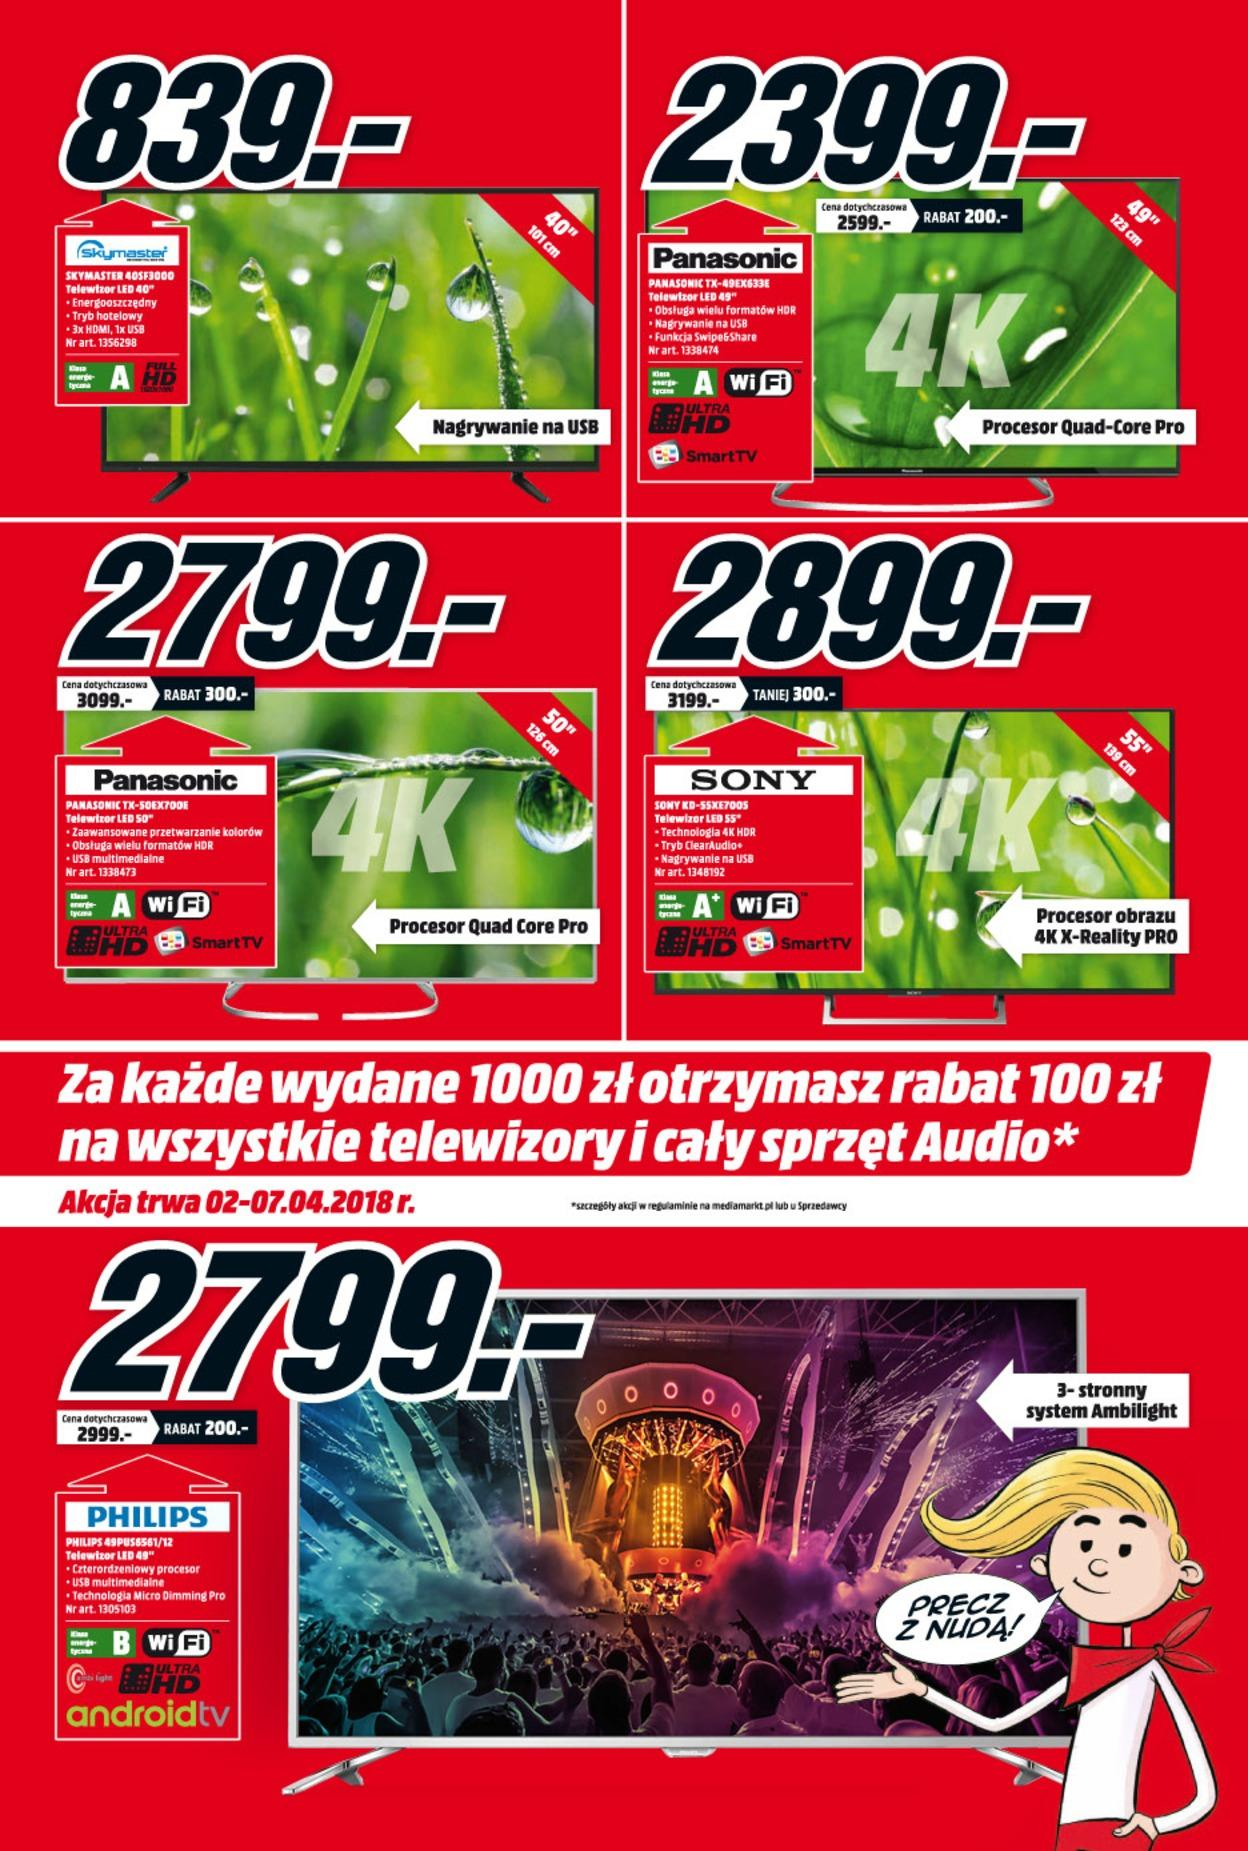 Gazetka promocyjna Media Markt do 07/04/2018 str.1